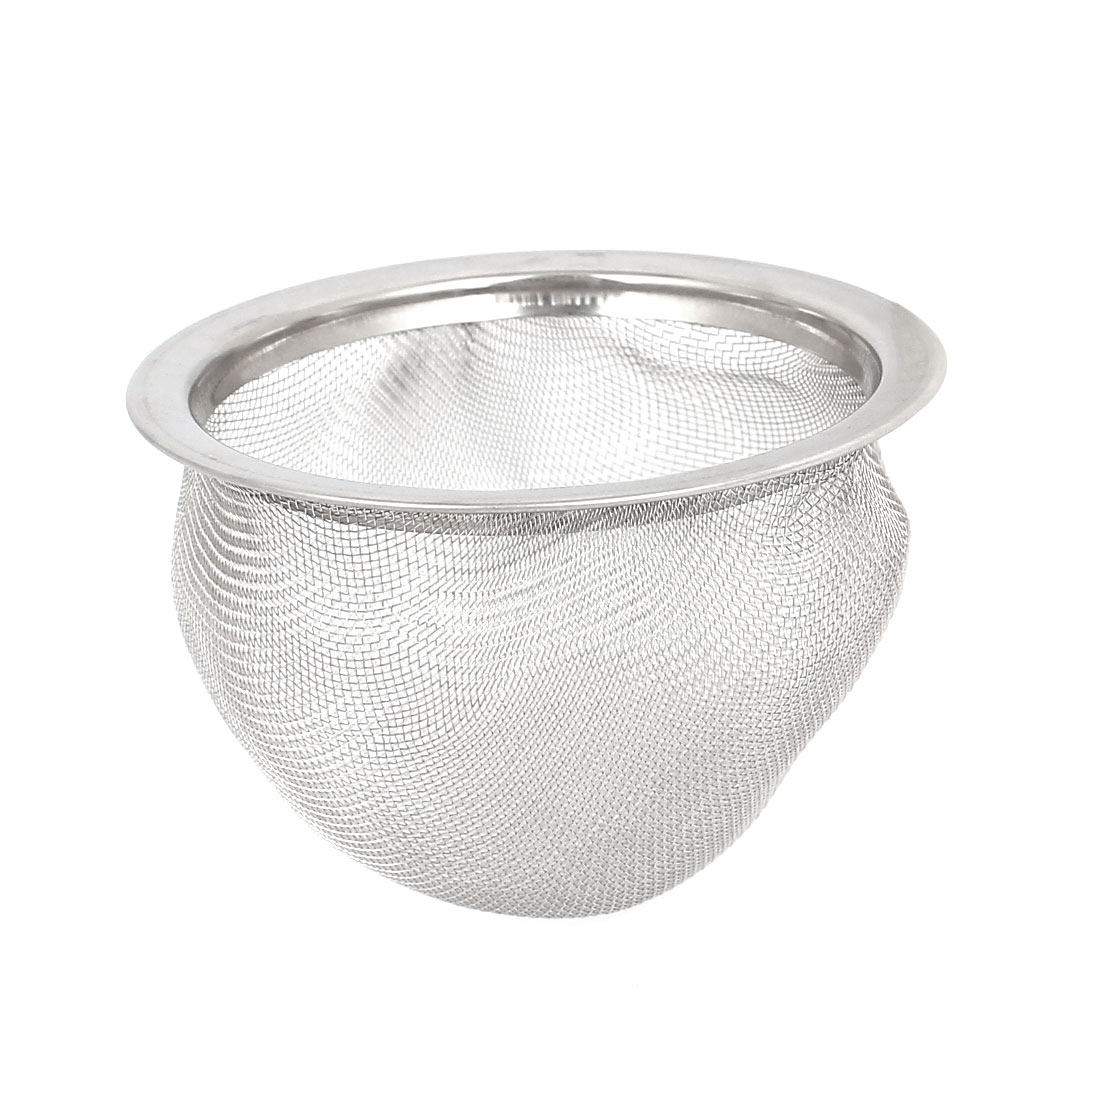 65mm x 50mm Silver Tone Stainless Steel Wire Mesh Round Filter Spice Tea Strainer Basket